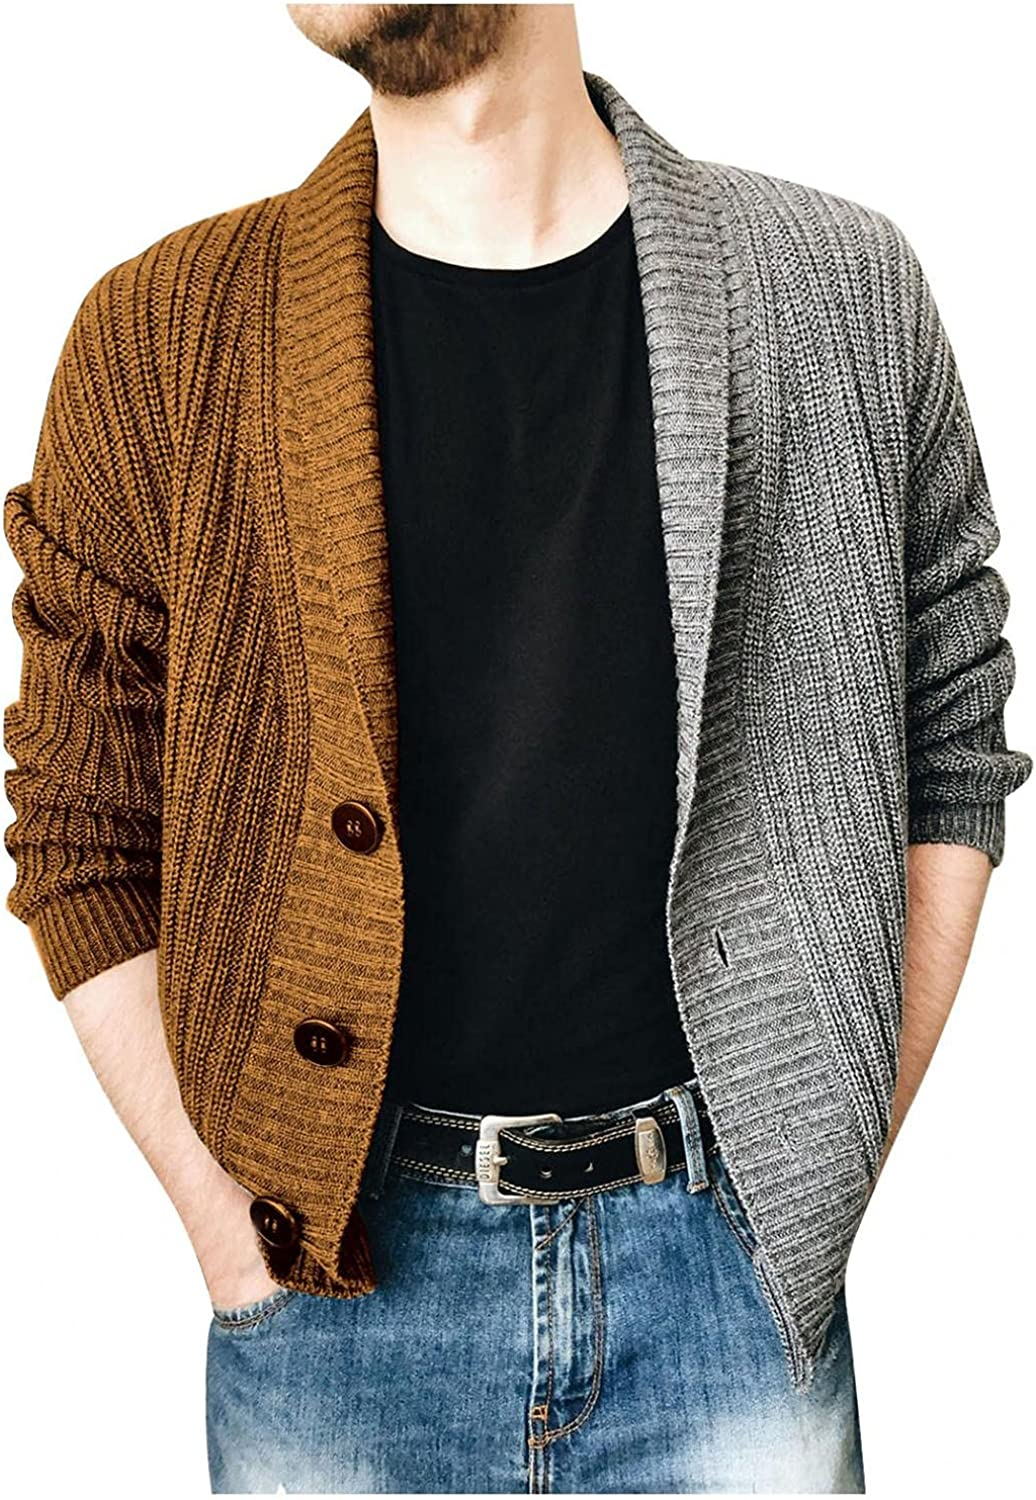 XUNFUN Cardigan Sweaters for Men Fashion Shawl Collar Cable Knitted Casual Long Sleeve Button Down Color Stiching Knitwear